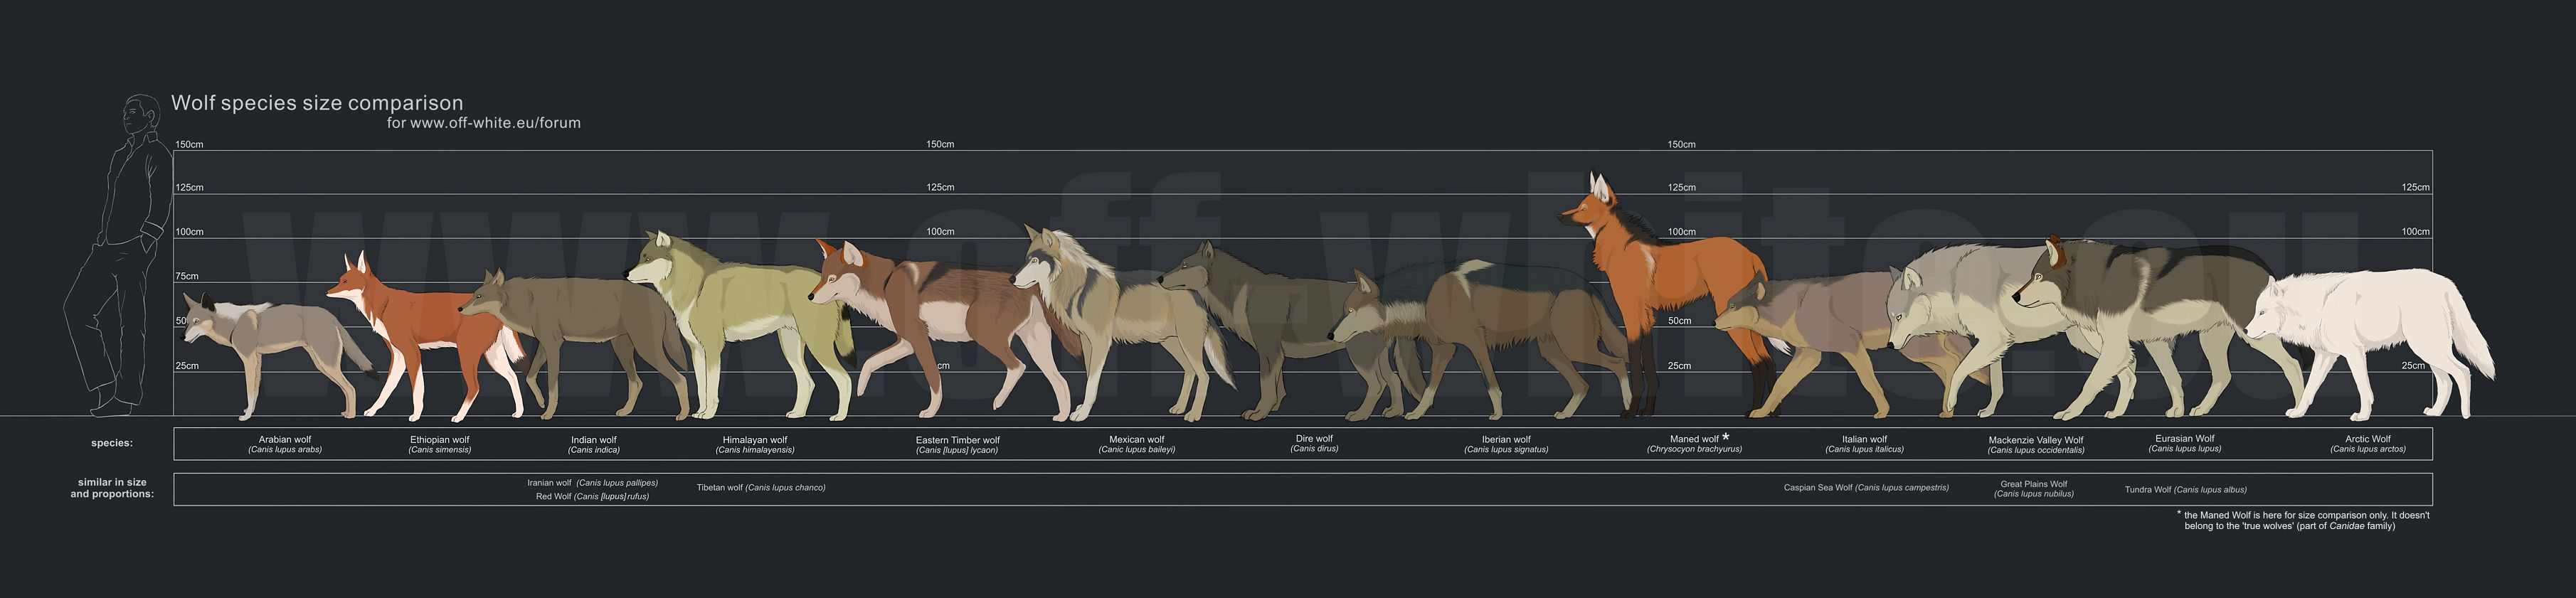 hight resolution of human size comparison to wolves